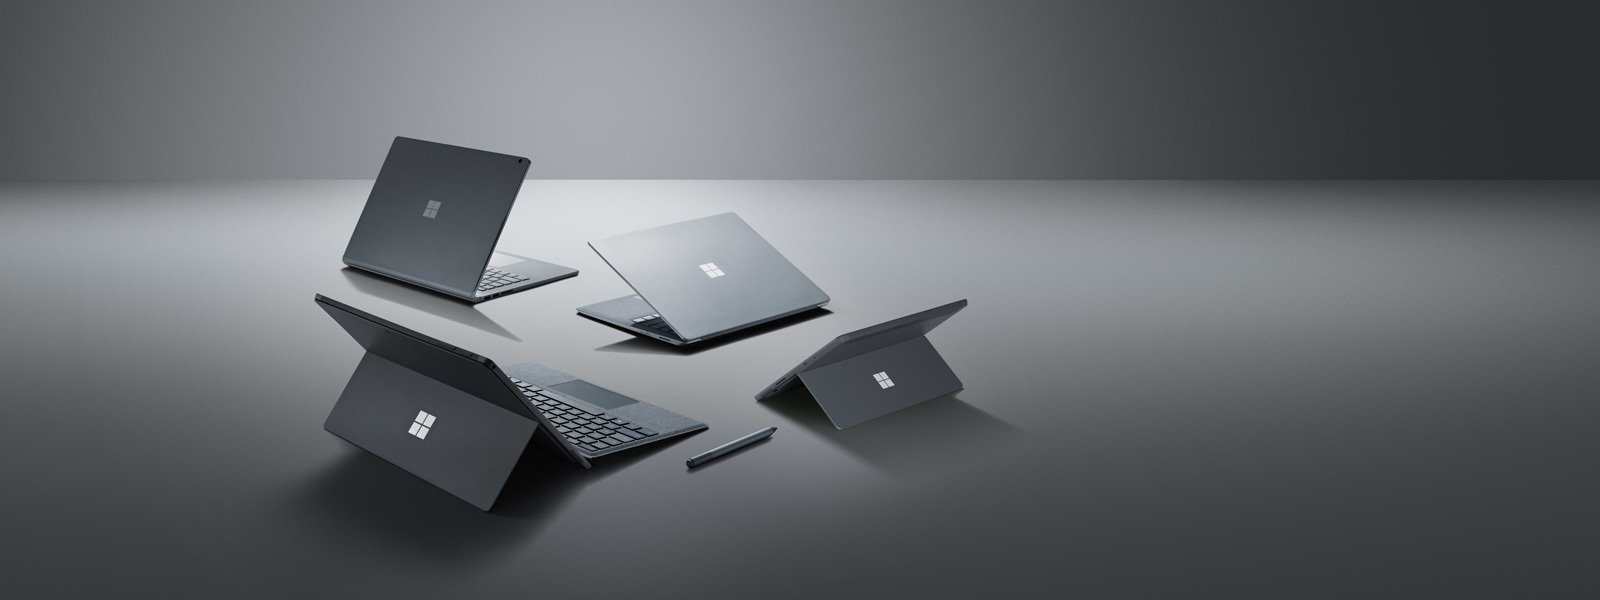 Surface-Produkt-Familie mit Surface Pen